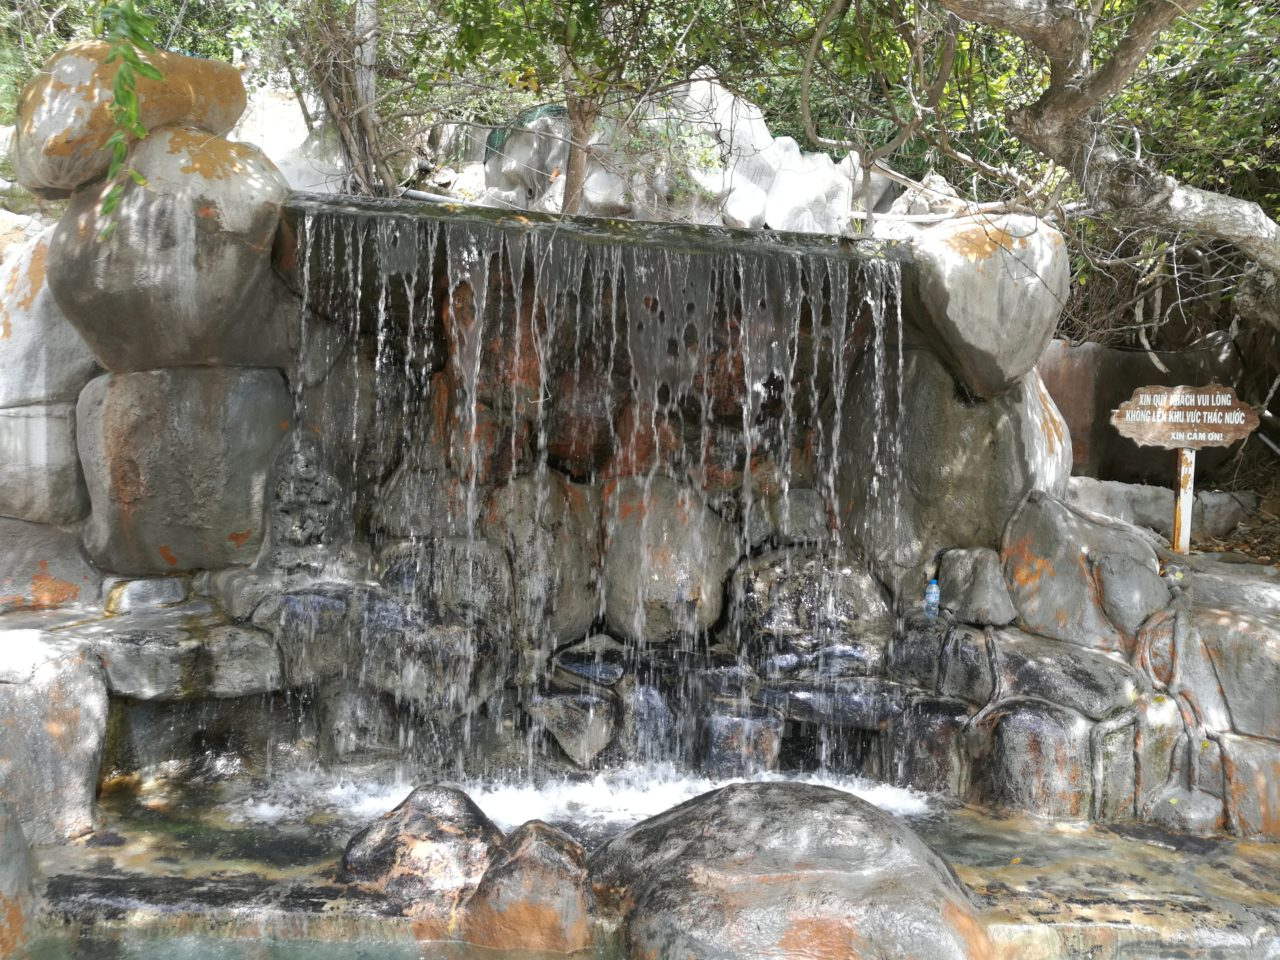 Waterfall in the springs